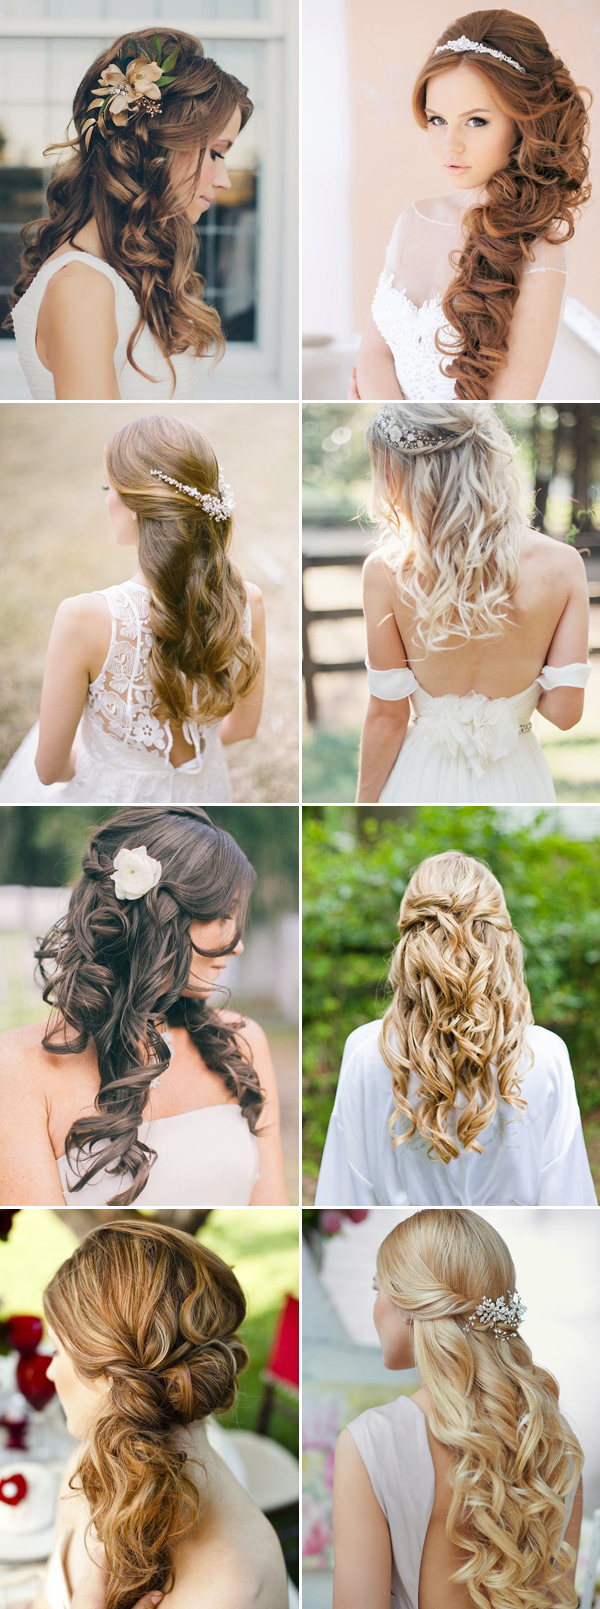 Fine 16 Gorgeous Half Up Half Down Hairstyles For Brides Praise Wedding Short Hairstyles For Black Women Fulllsitofus